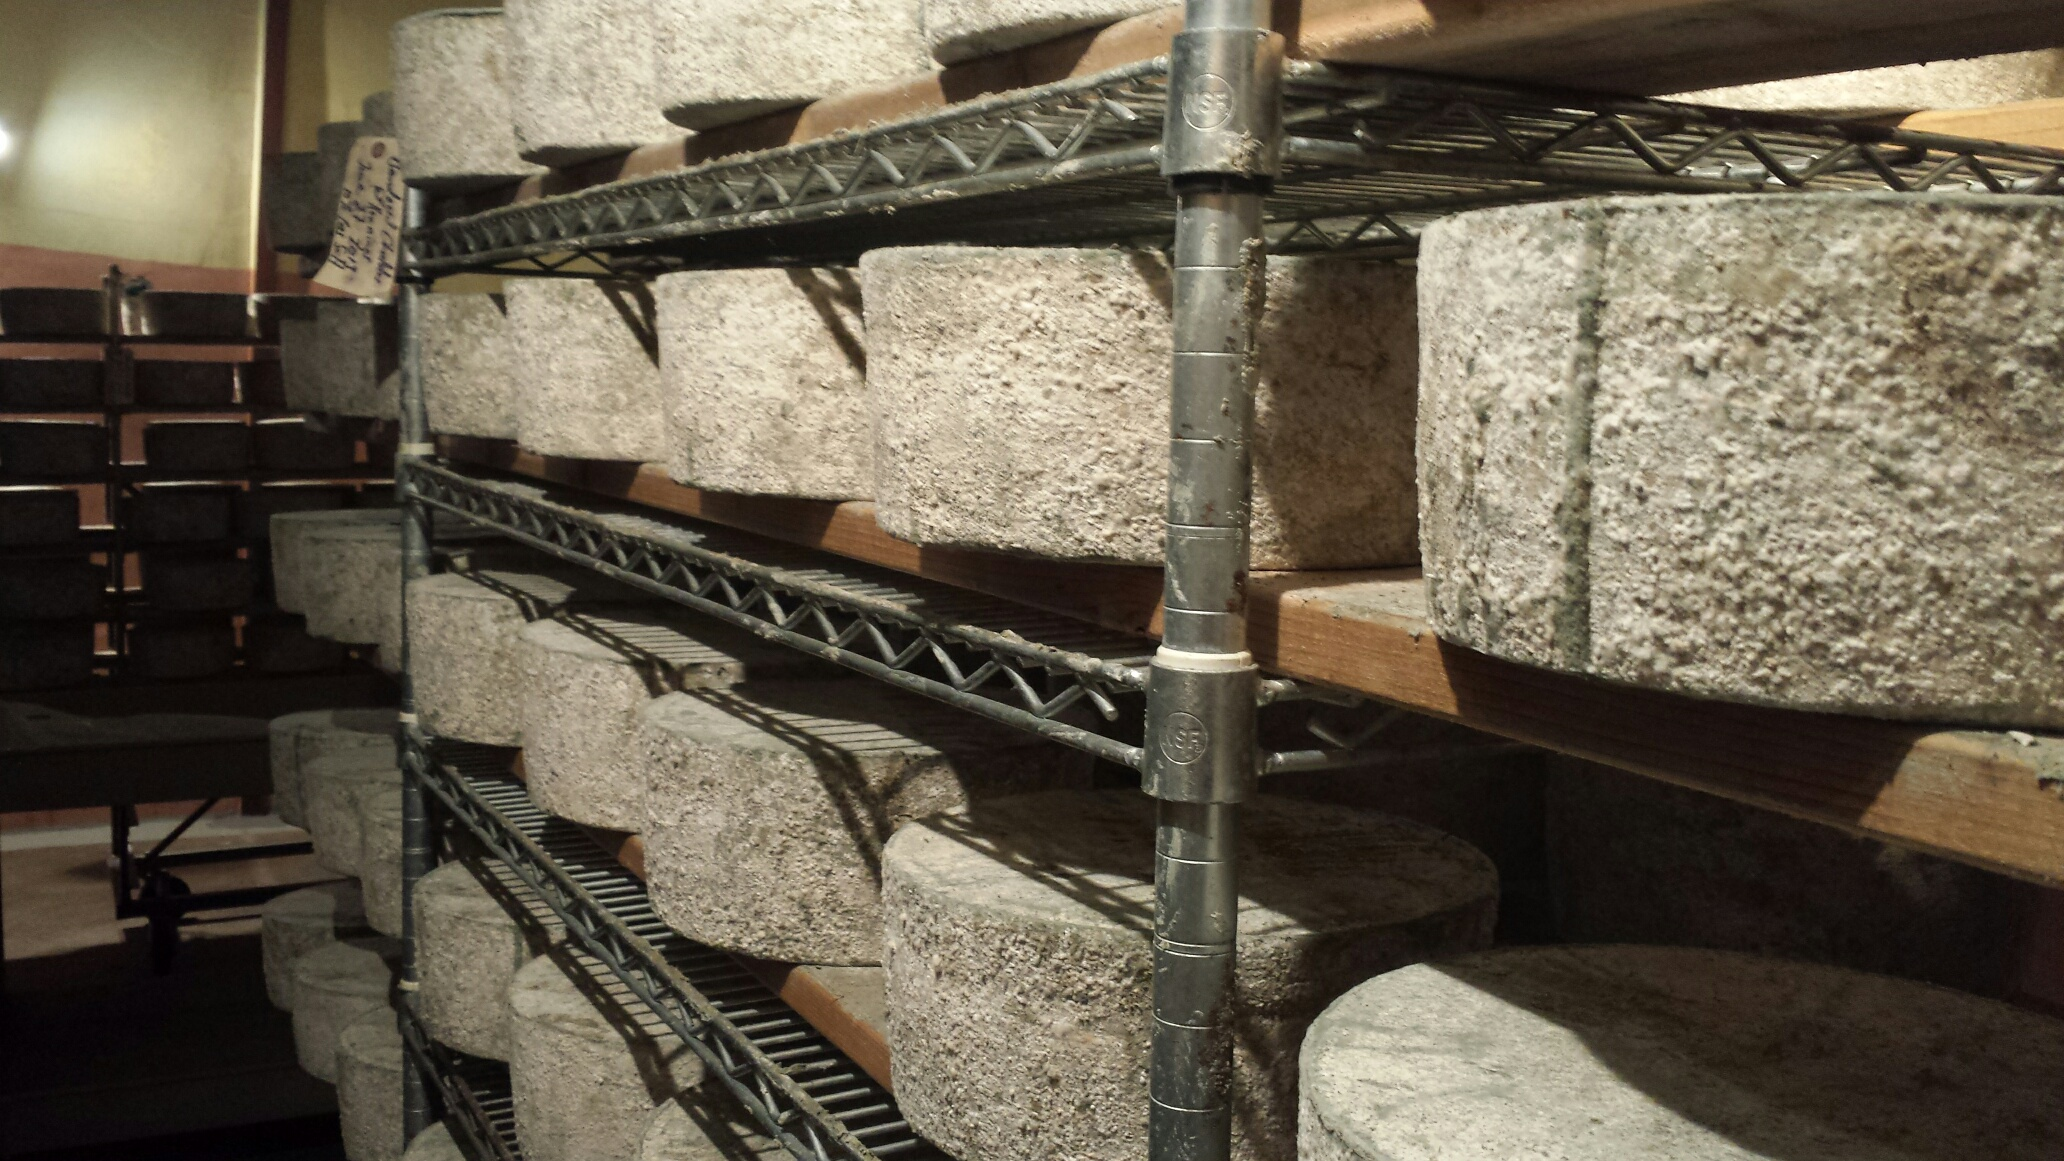 Wheels of cheese being aged in Lehner's cheese cave. Photo by Willi Lehner